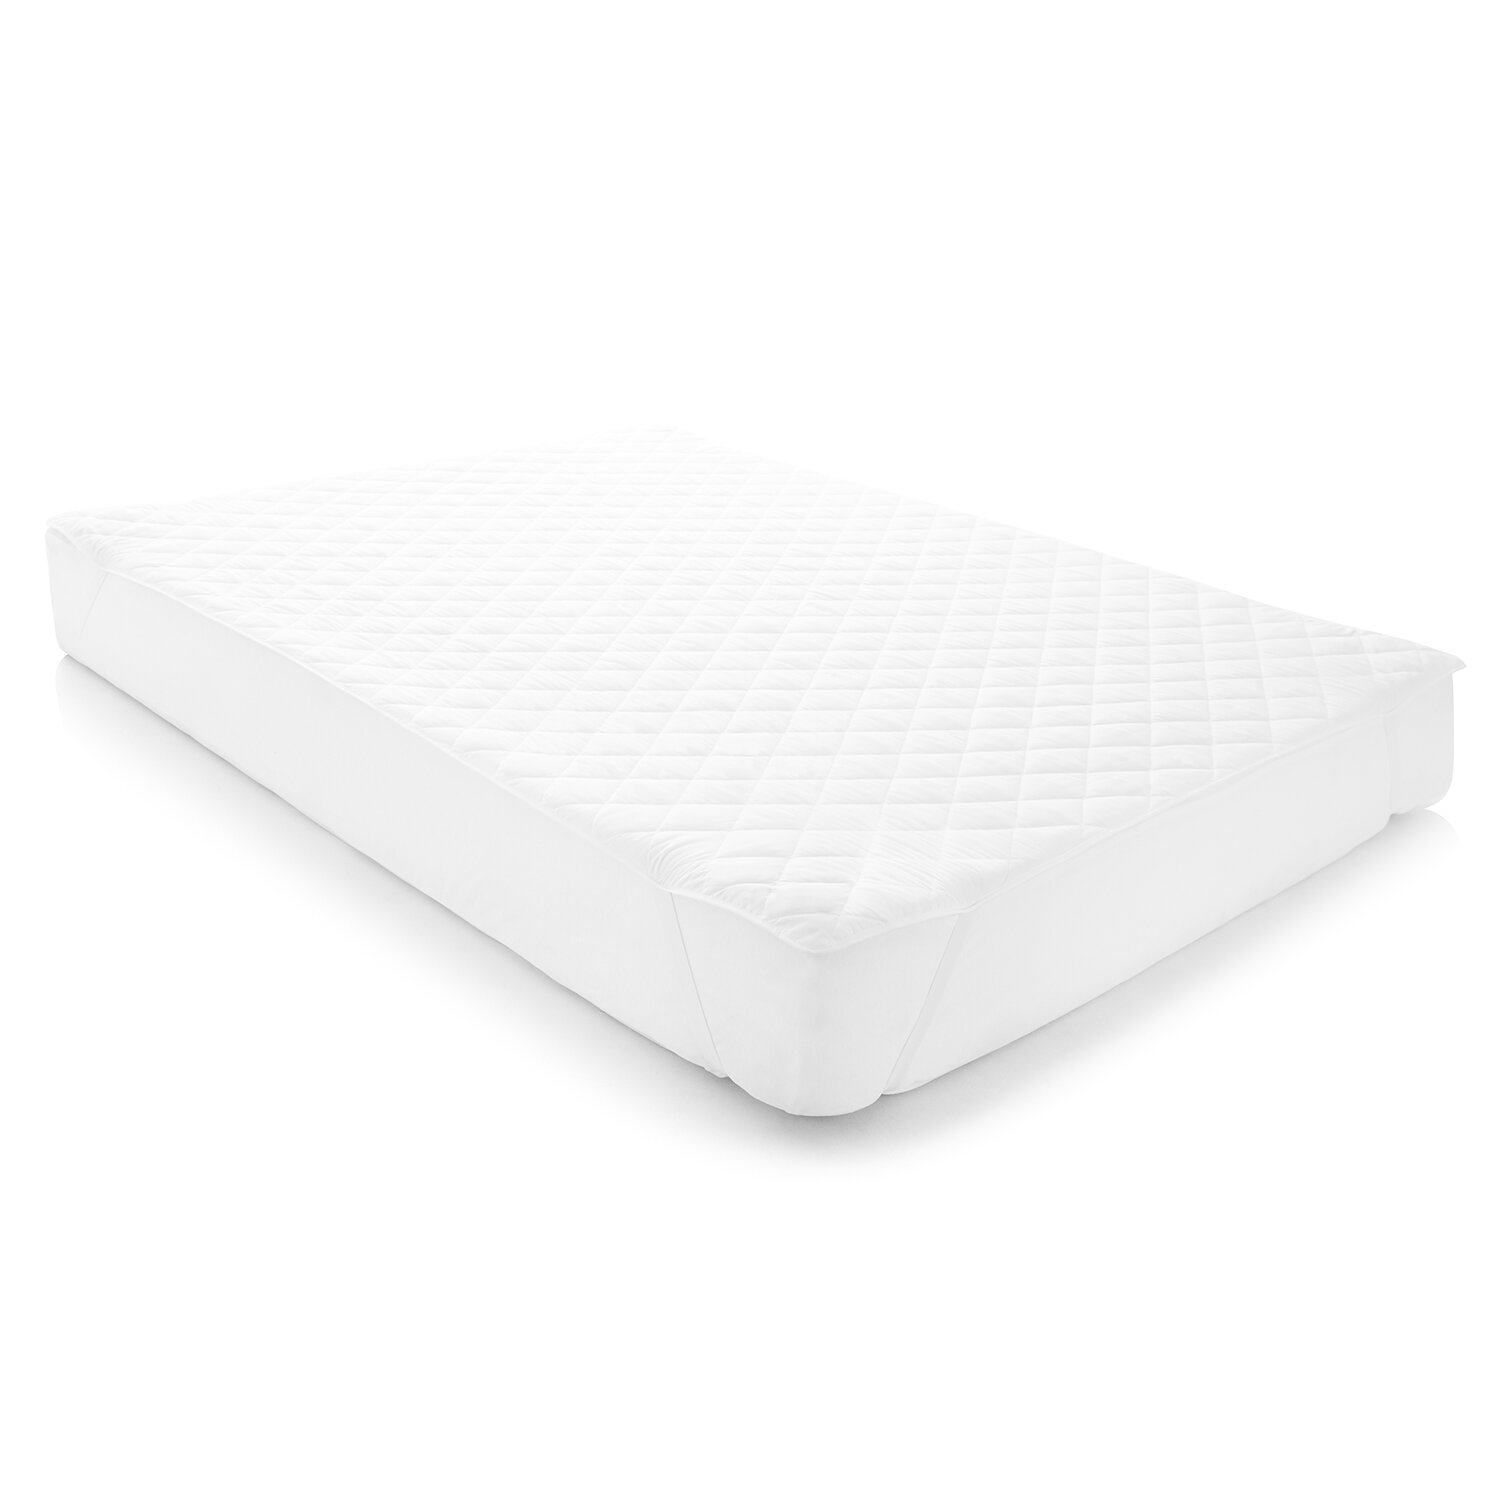 Linenspa Waterproof Mattress Pad With Quilted Microfiber